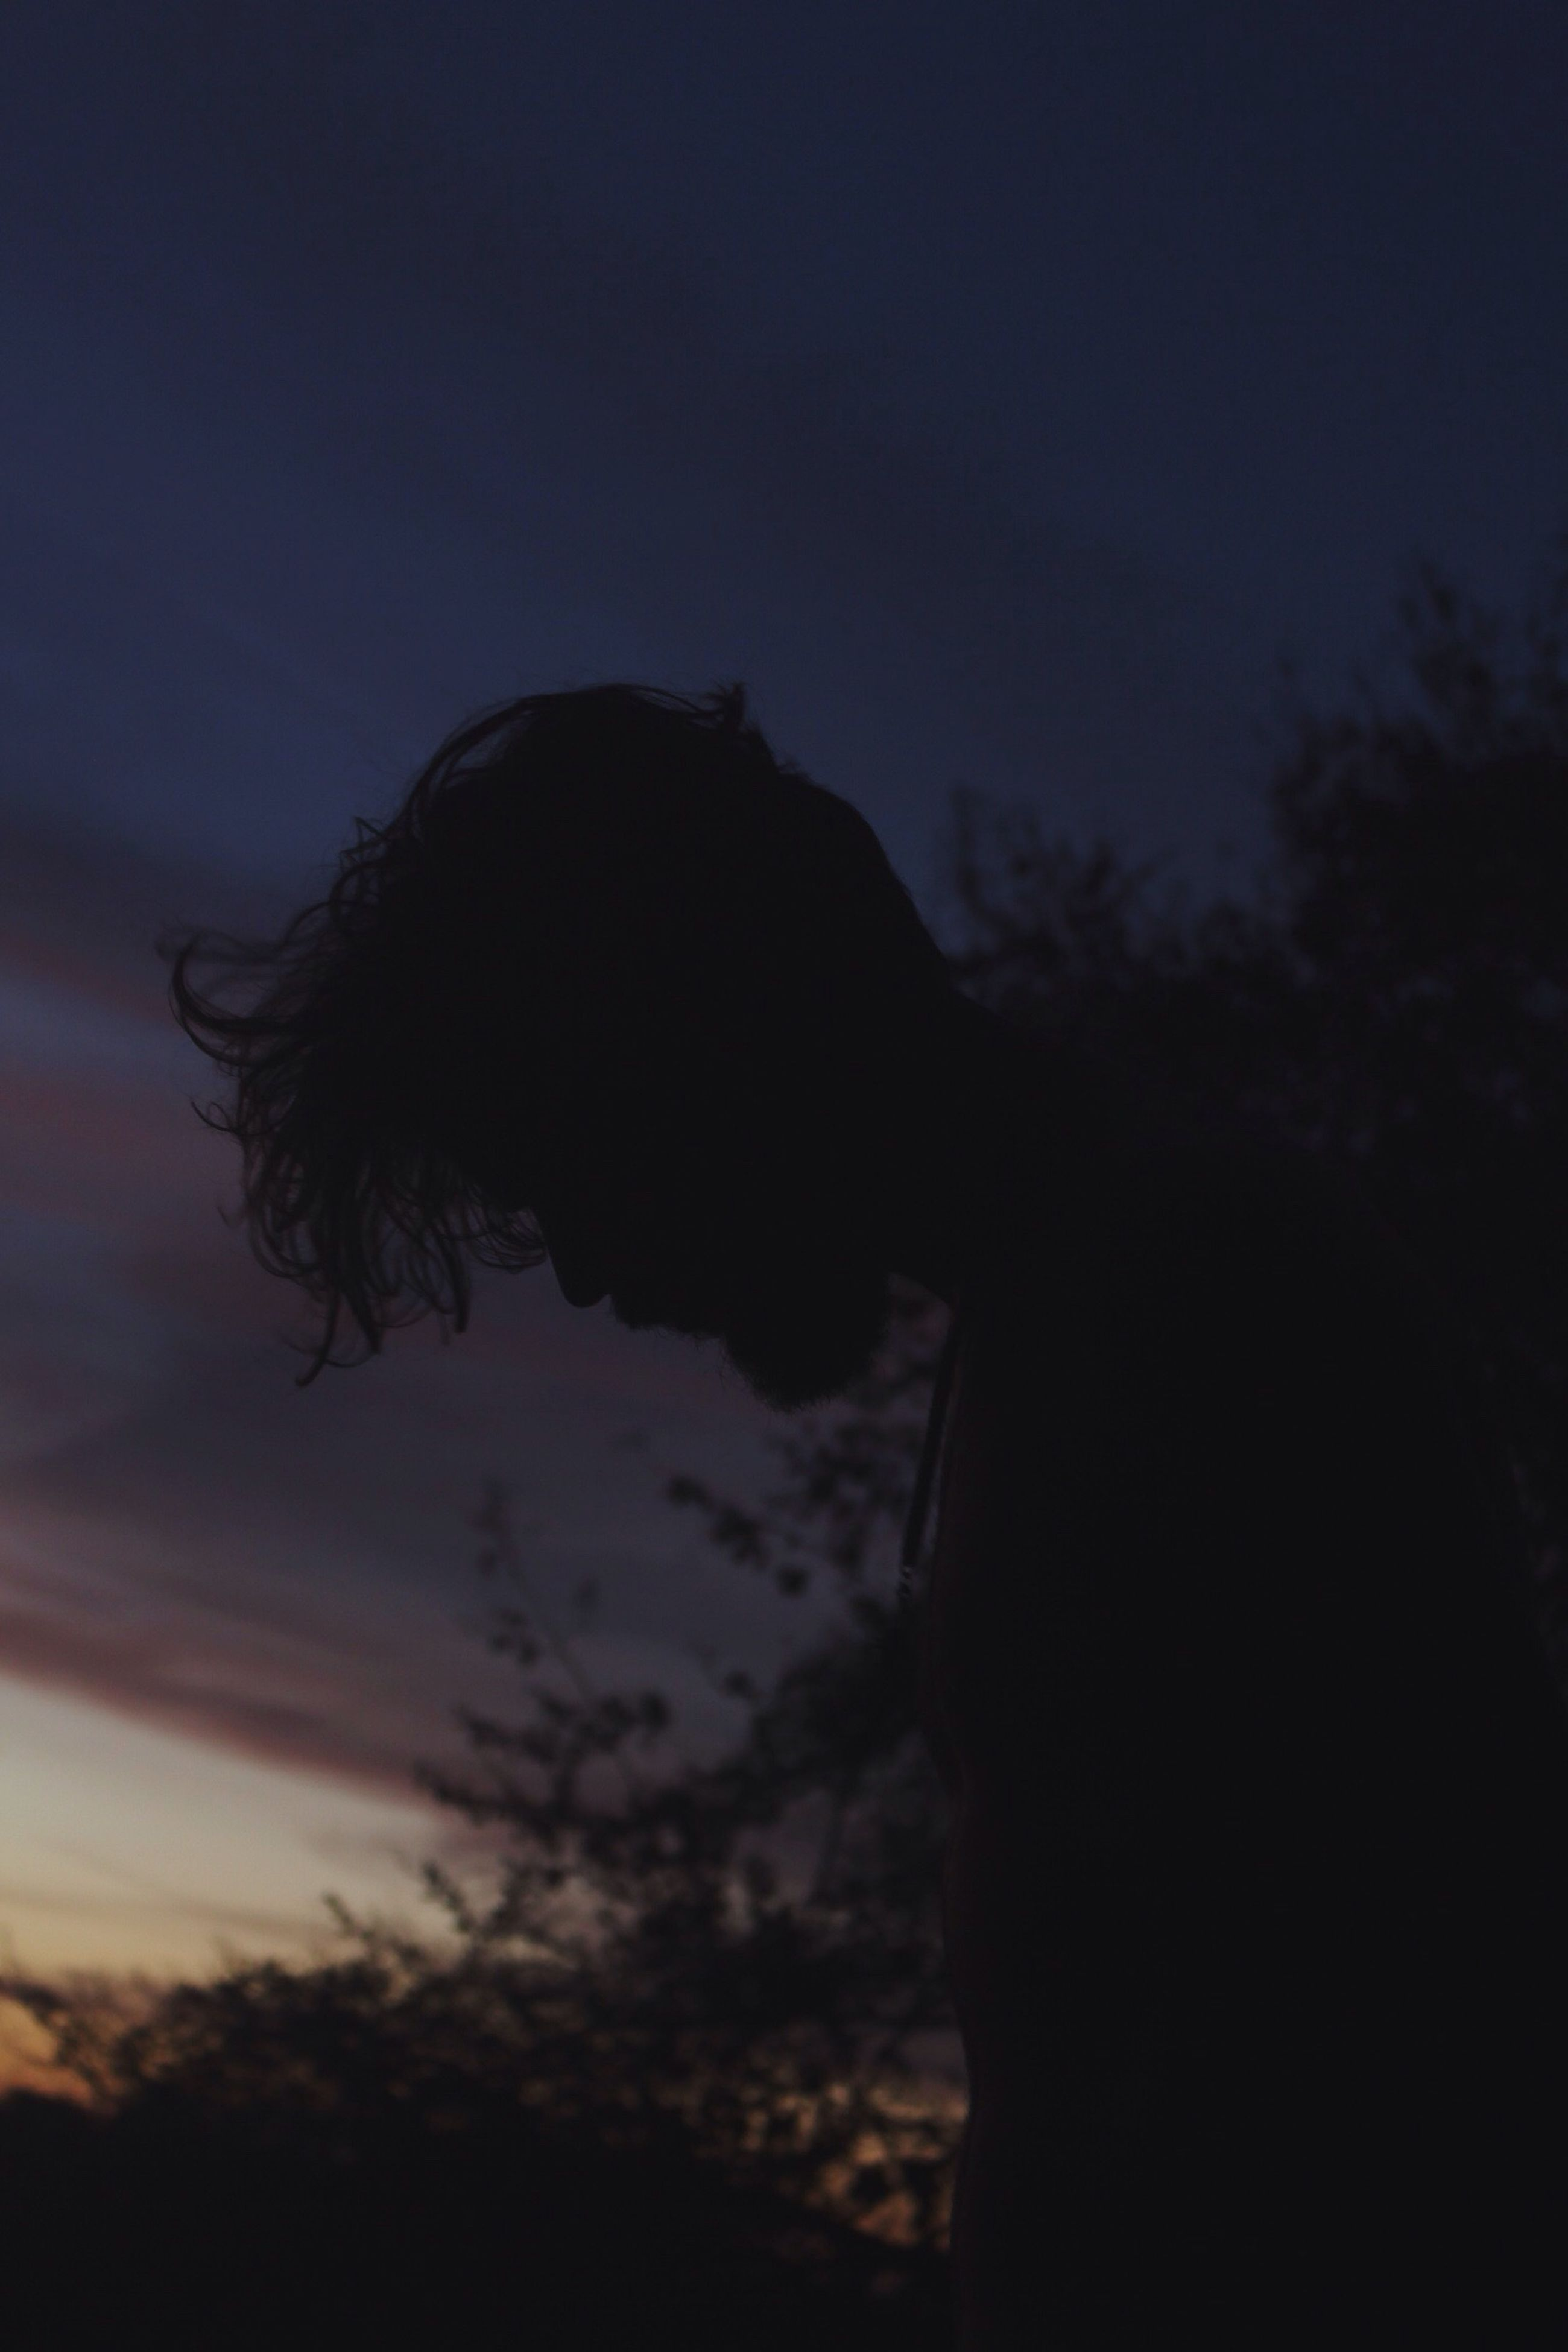 sky, silhouette, dusk, sunset, nature, outdoors, cloud - sky, one person, men, human body part, adult, night, people, human hand